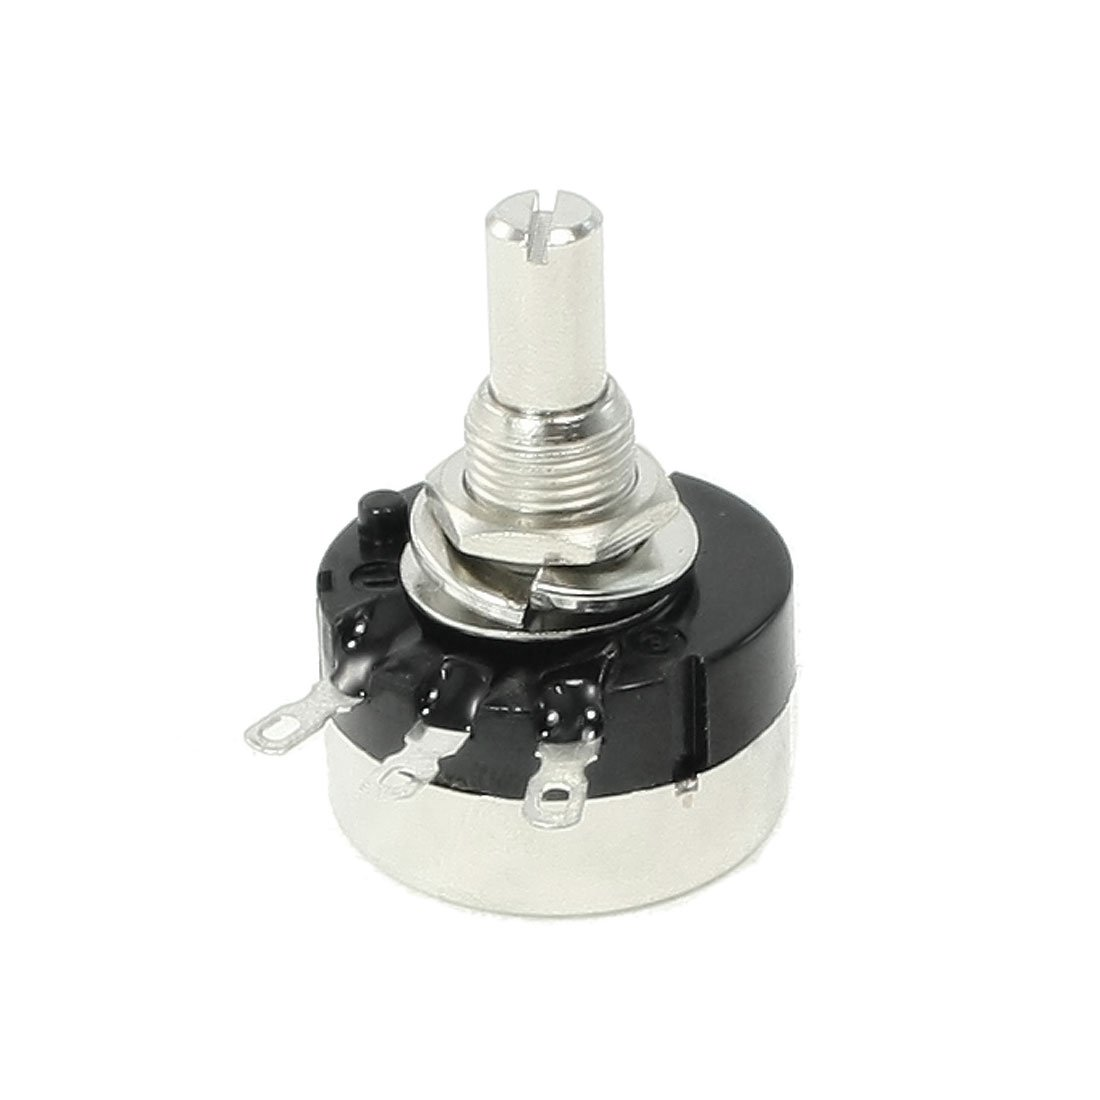 Uxcell RV24YN20S/B202 Round Shaft Carbon Film Rotary Taper Potentiometer, 2K Ohm, 6 mm a13060400ux0020